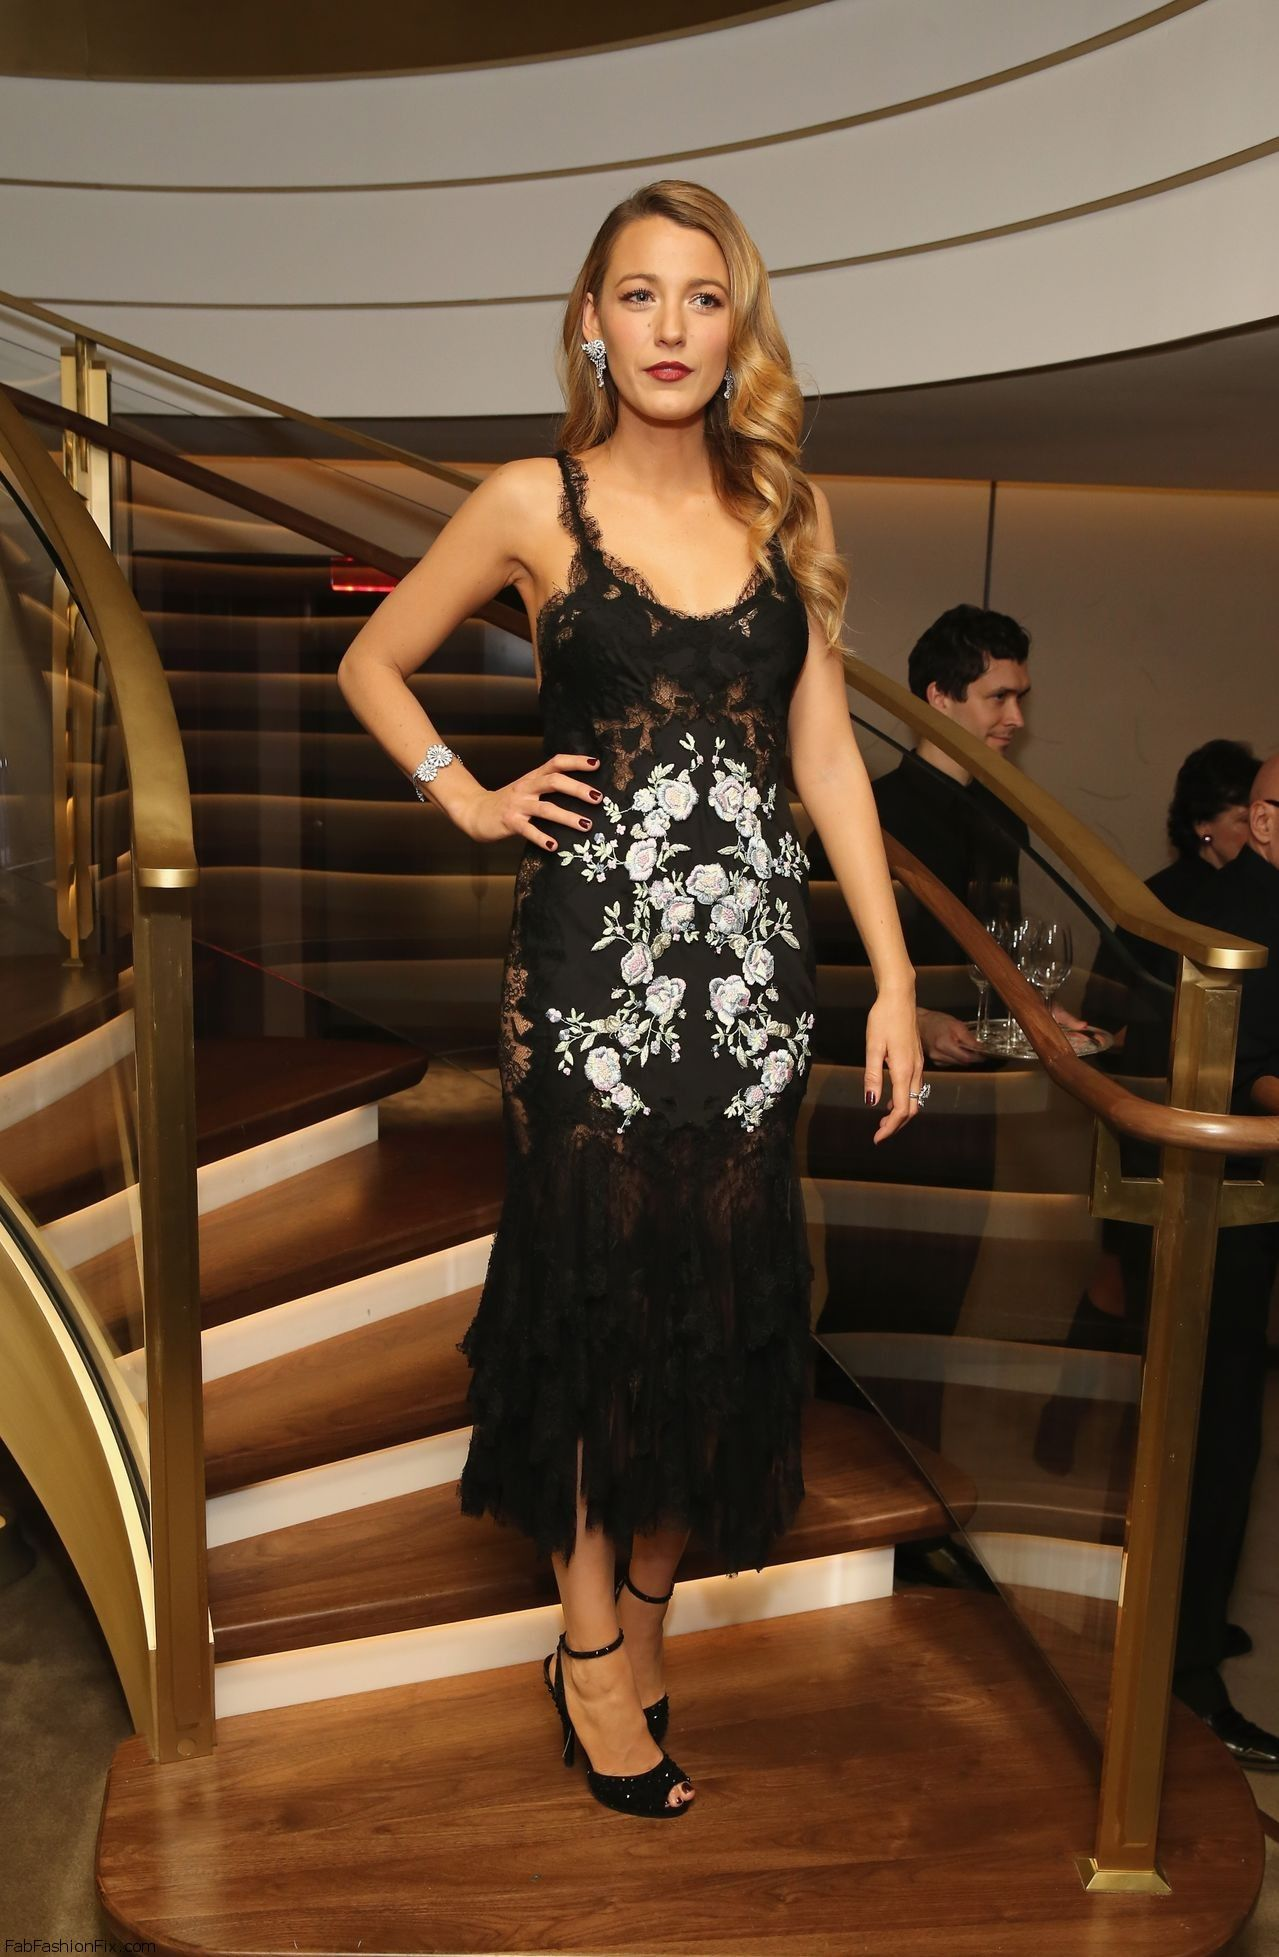 Blake_Lively_Fifth_Avenue_Unveiling121013_tcc_4